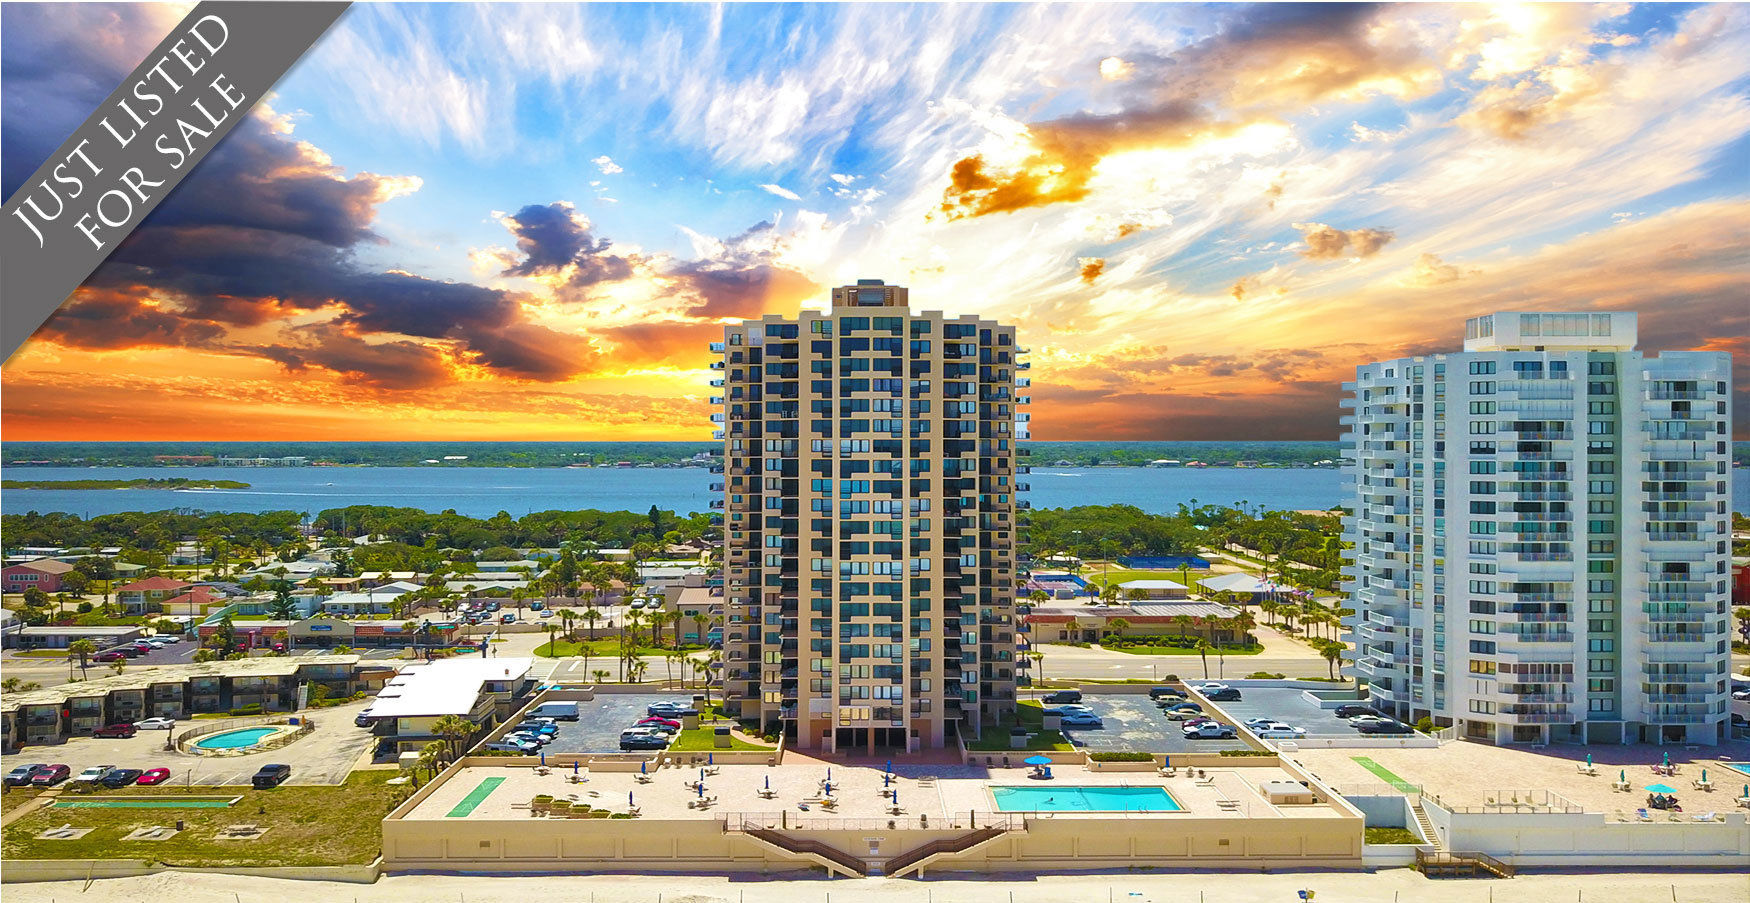 Oceans One Condos For Sale Oceanfront Real Estate at 3051 S Atlantic Ave Daytona Beach Shores, FL